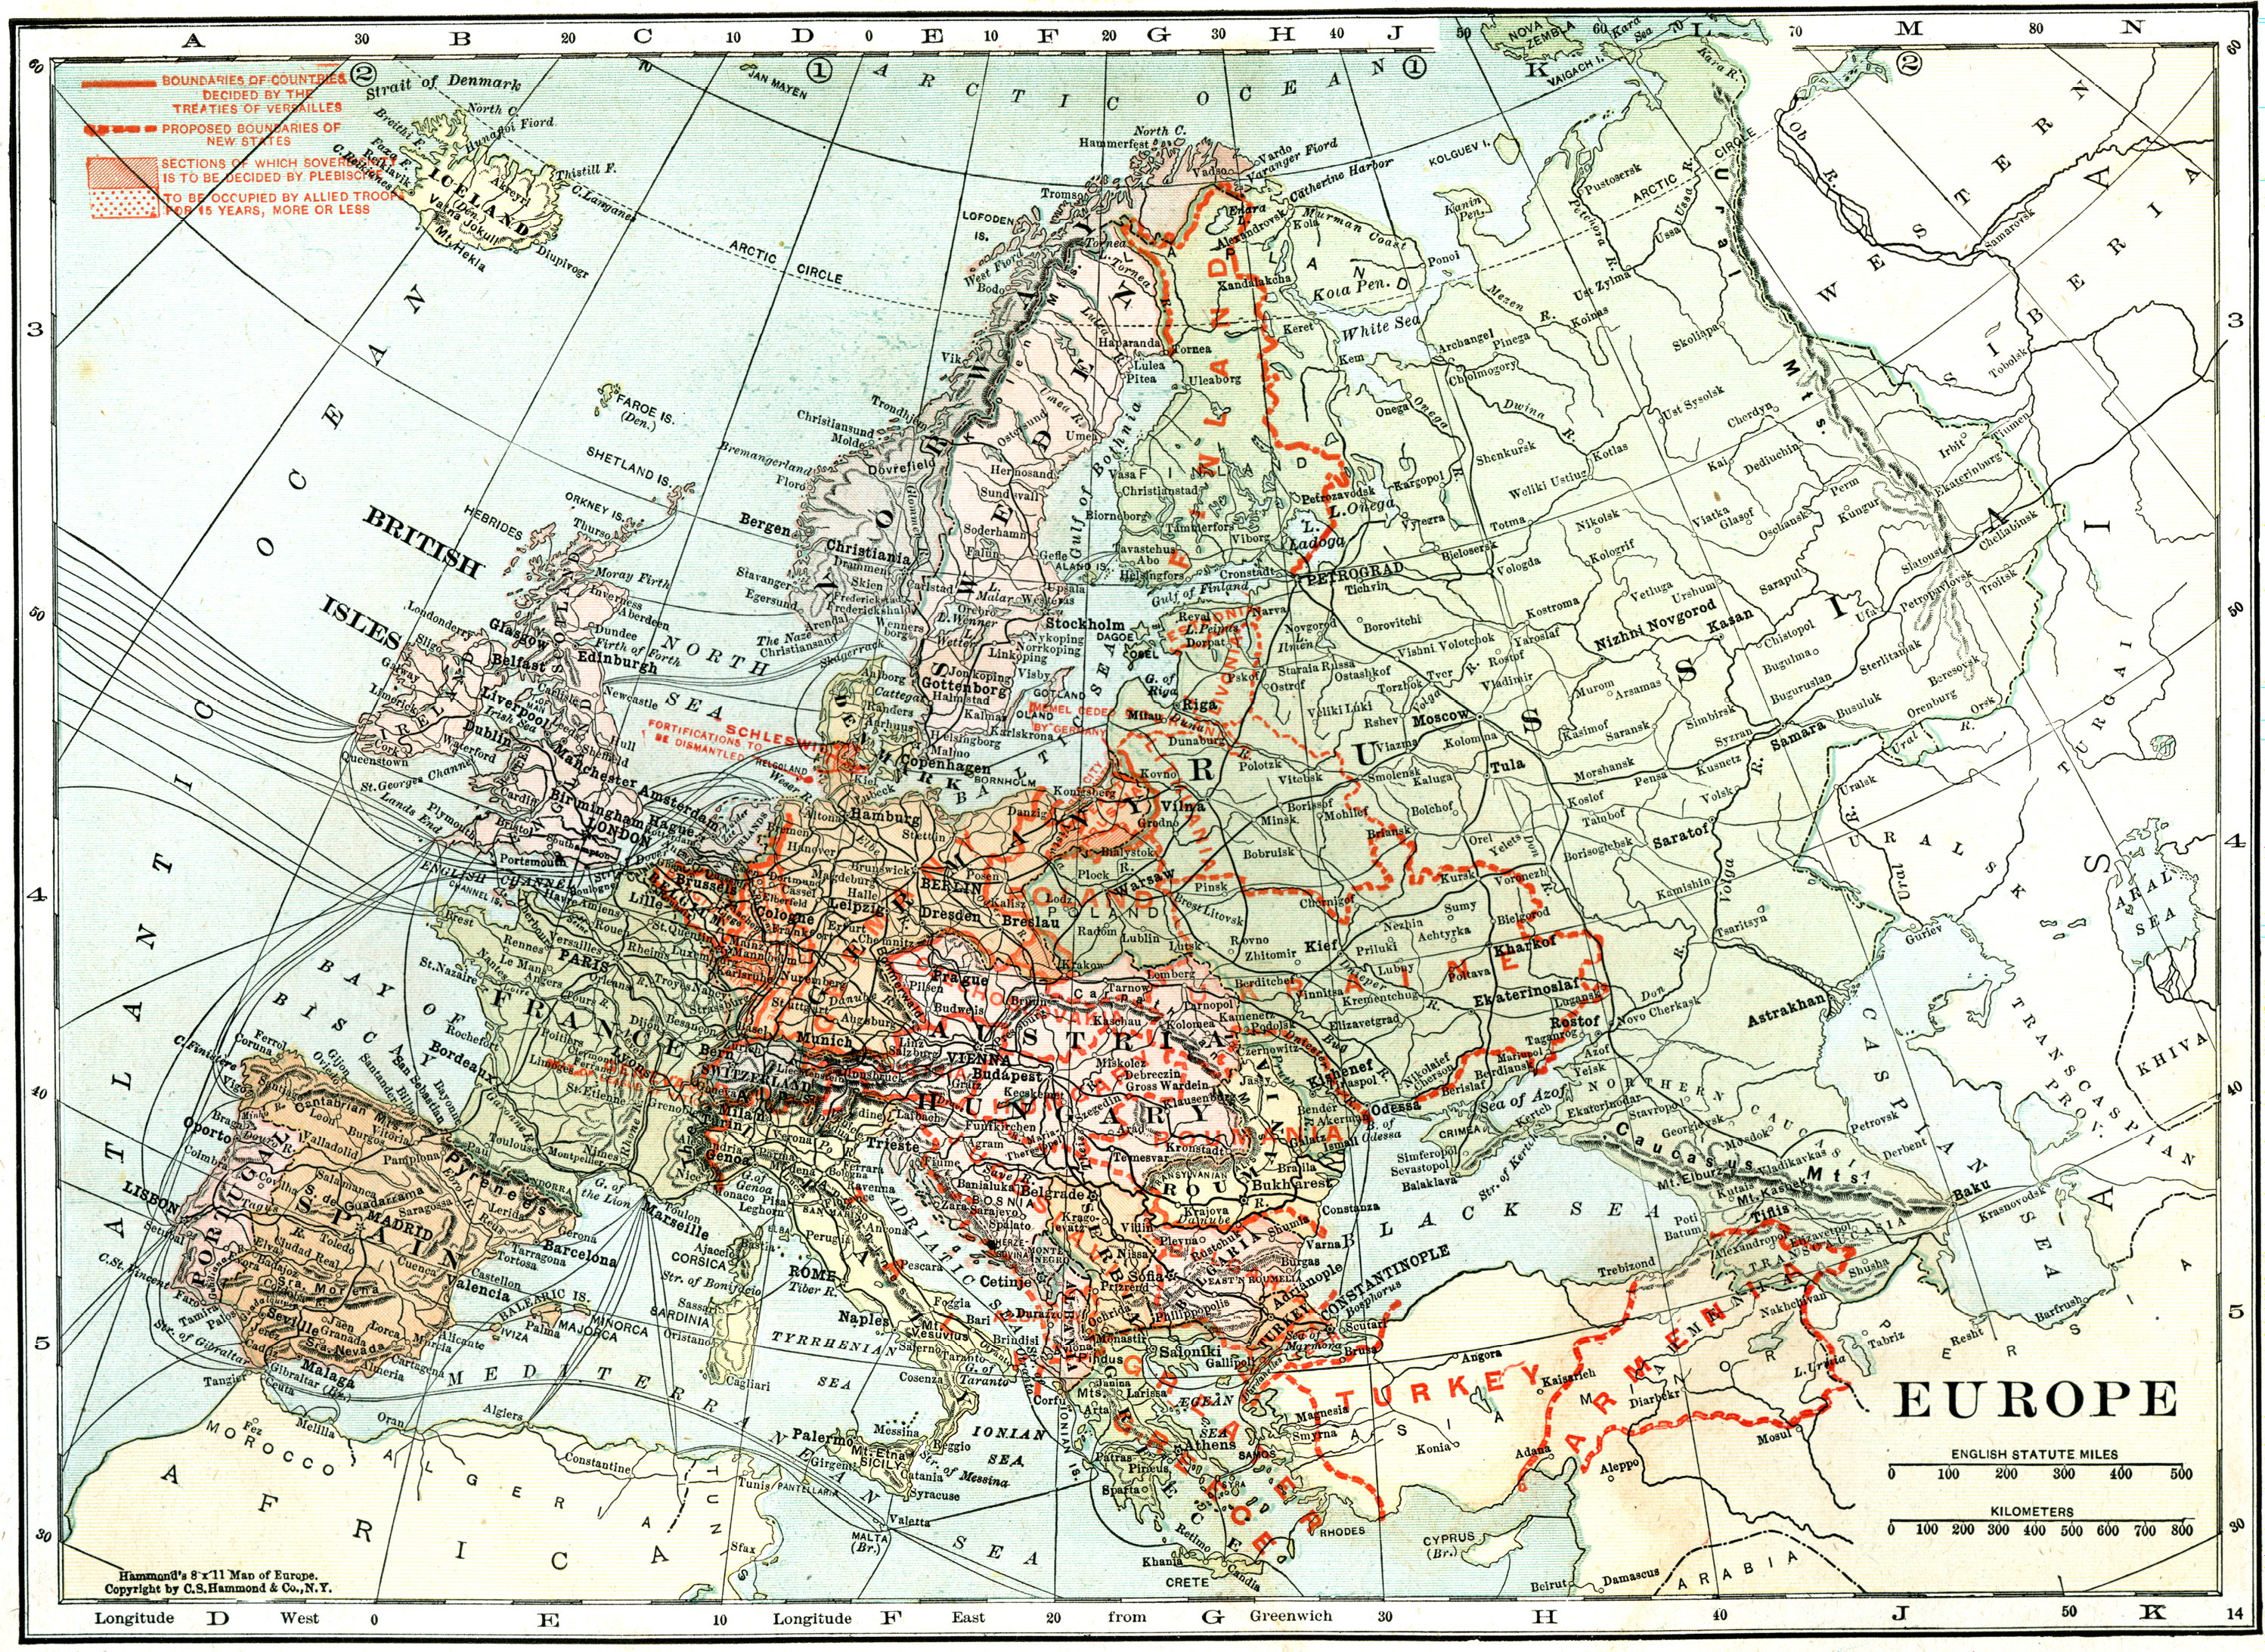 Paris Europe Map.File Map Of Europe In 1920 After The Paris Peace Conference Jpg